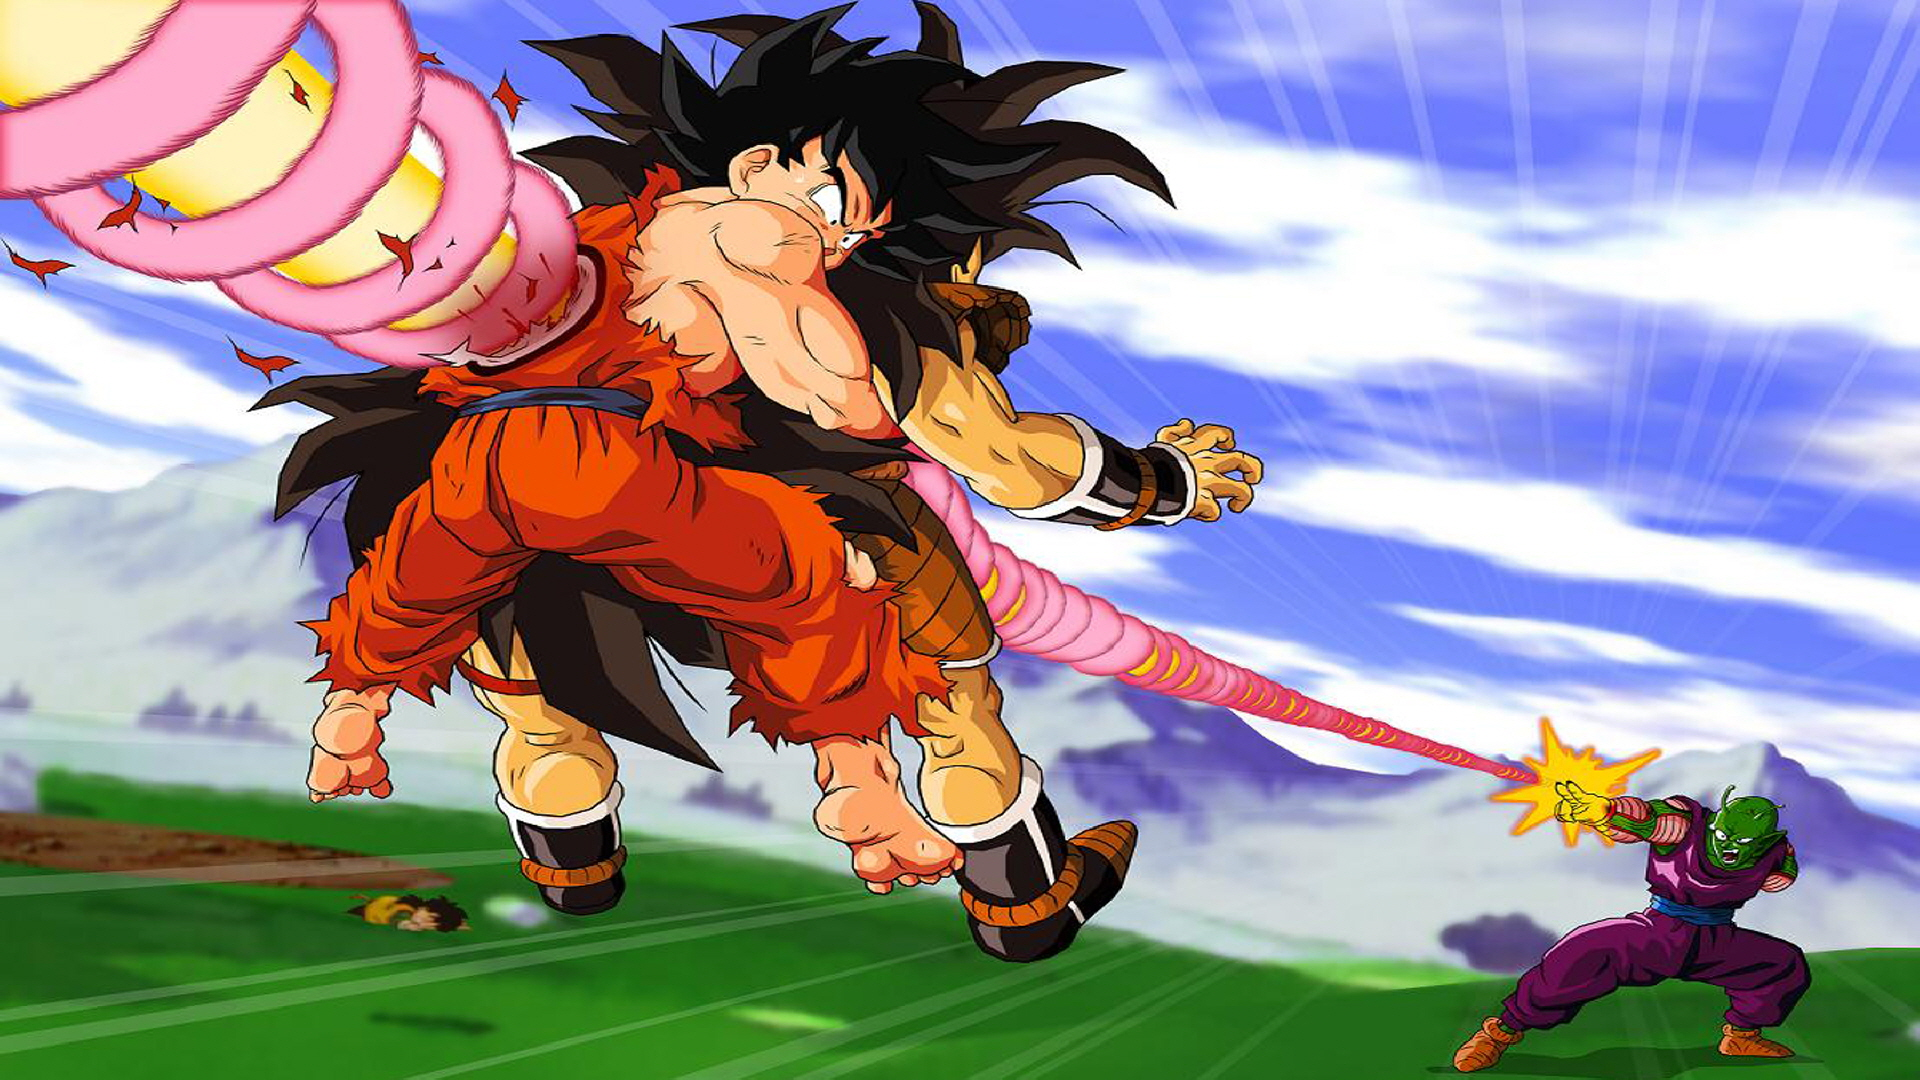 Image for Piccolos Special Beam Dragon Ball Z Wallpaper PC 1920x1080